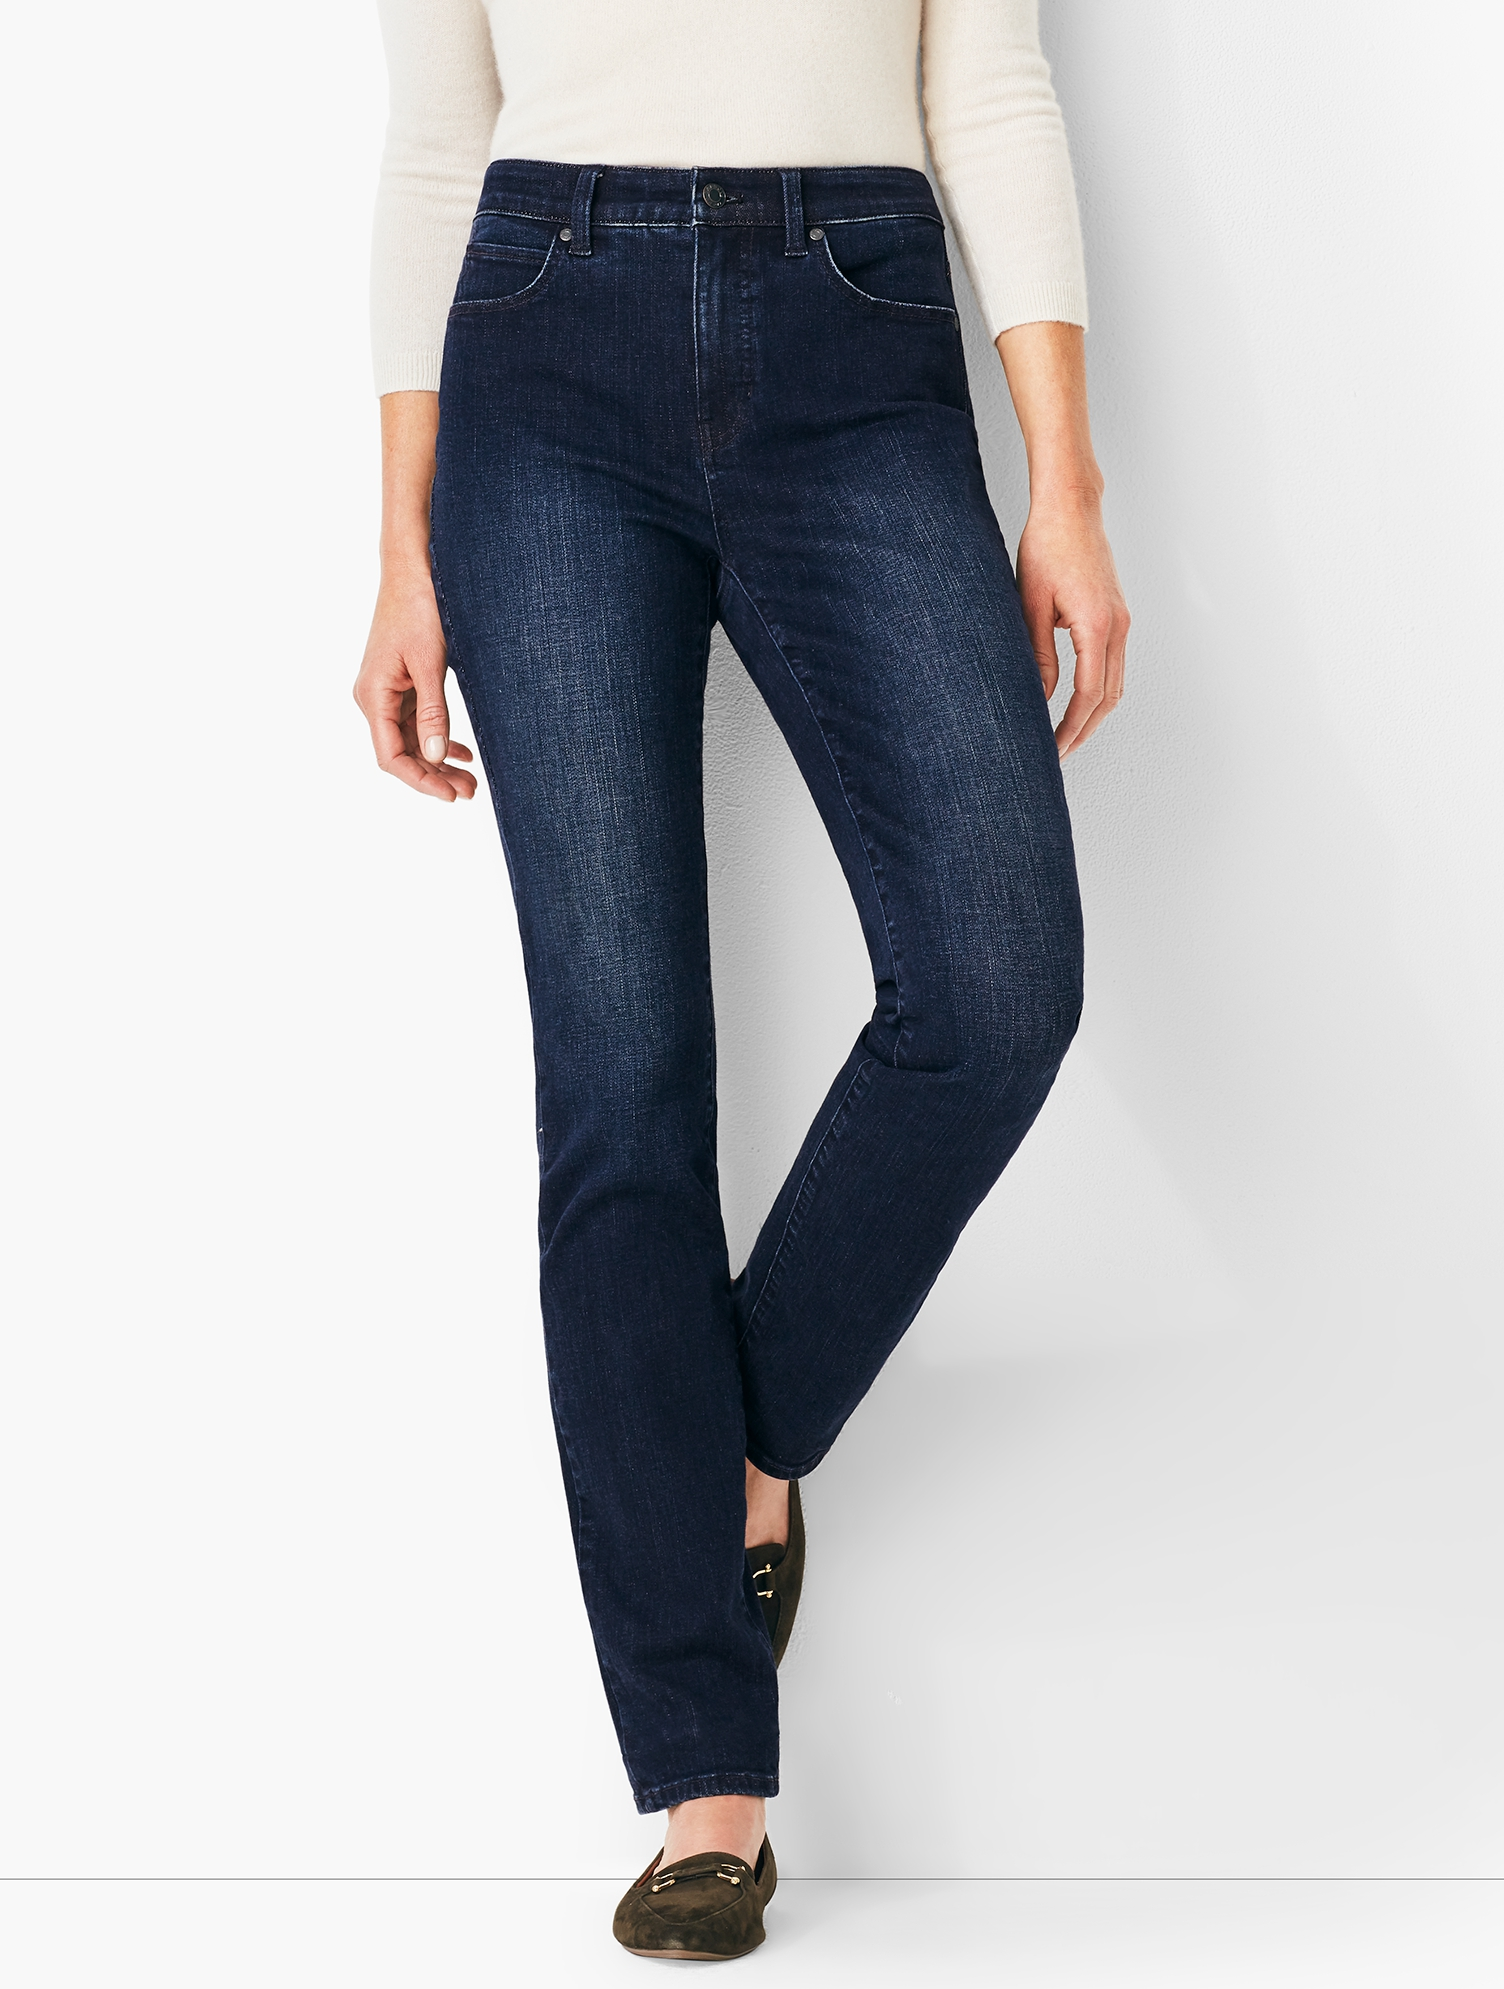 A classic silhouette with a straight fit from knee to hem. This updated wash is exactly what your closet\\\'s been missing! The super stretch denim, flattering high rise and invisible slimming panel work to hold you in, smooth you out and contour curves for a flawless fit. If you have an hourglass figure, check out our High-Rise Straight-Leg Jeans - Marco Wash/Curvy Fit. features Straight Leg Hits: High Waist Full Length Closure: Fly Front With Button Imported Fit: Inseam: Misses: 31 inches; Misses